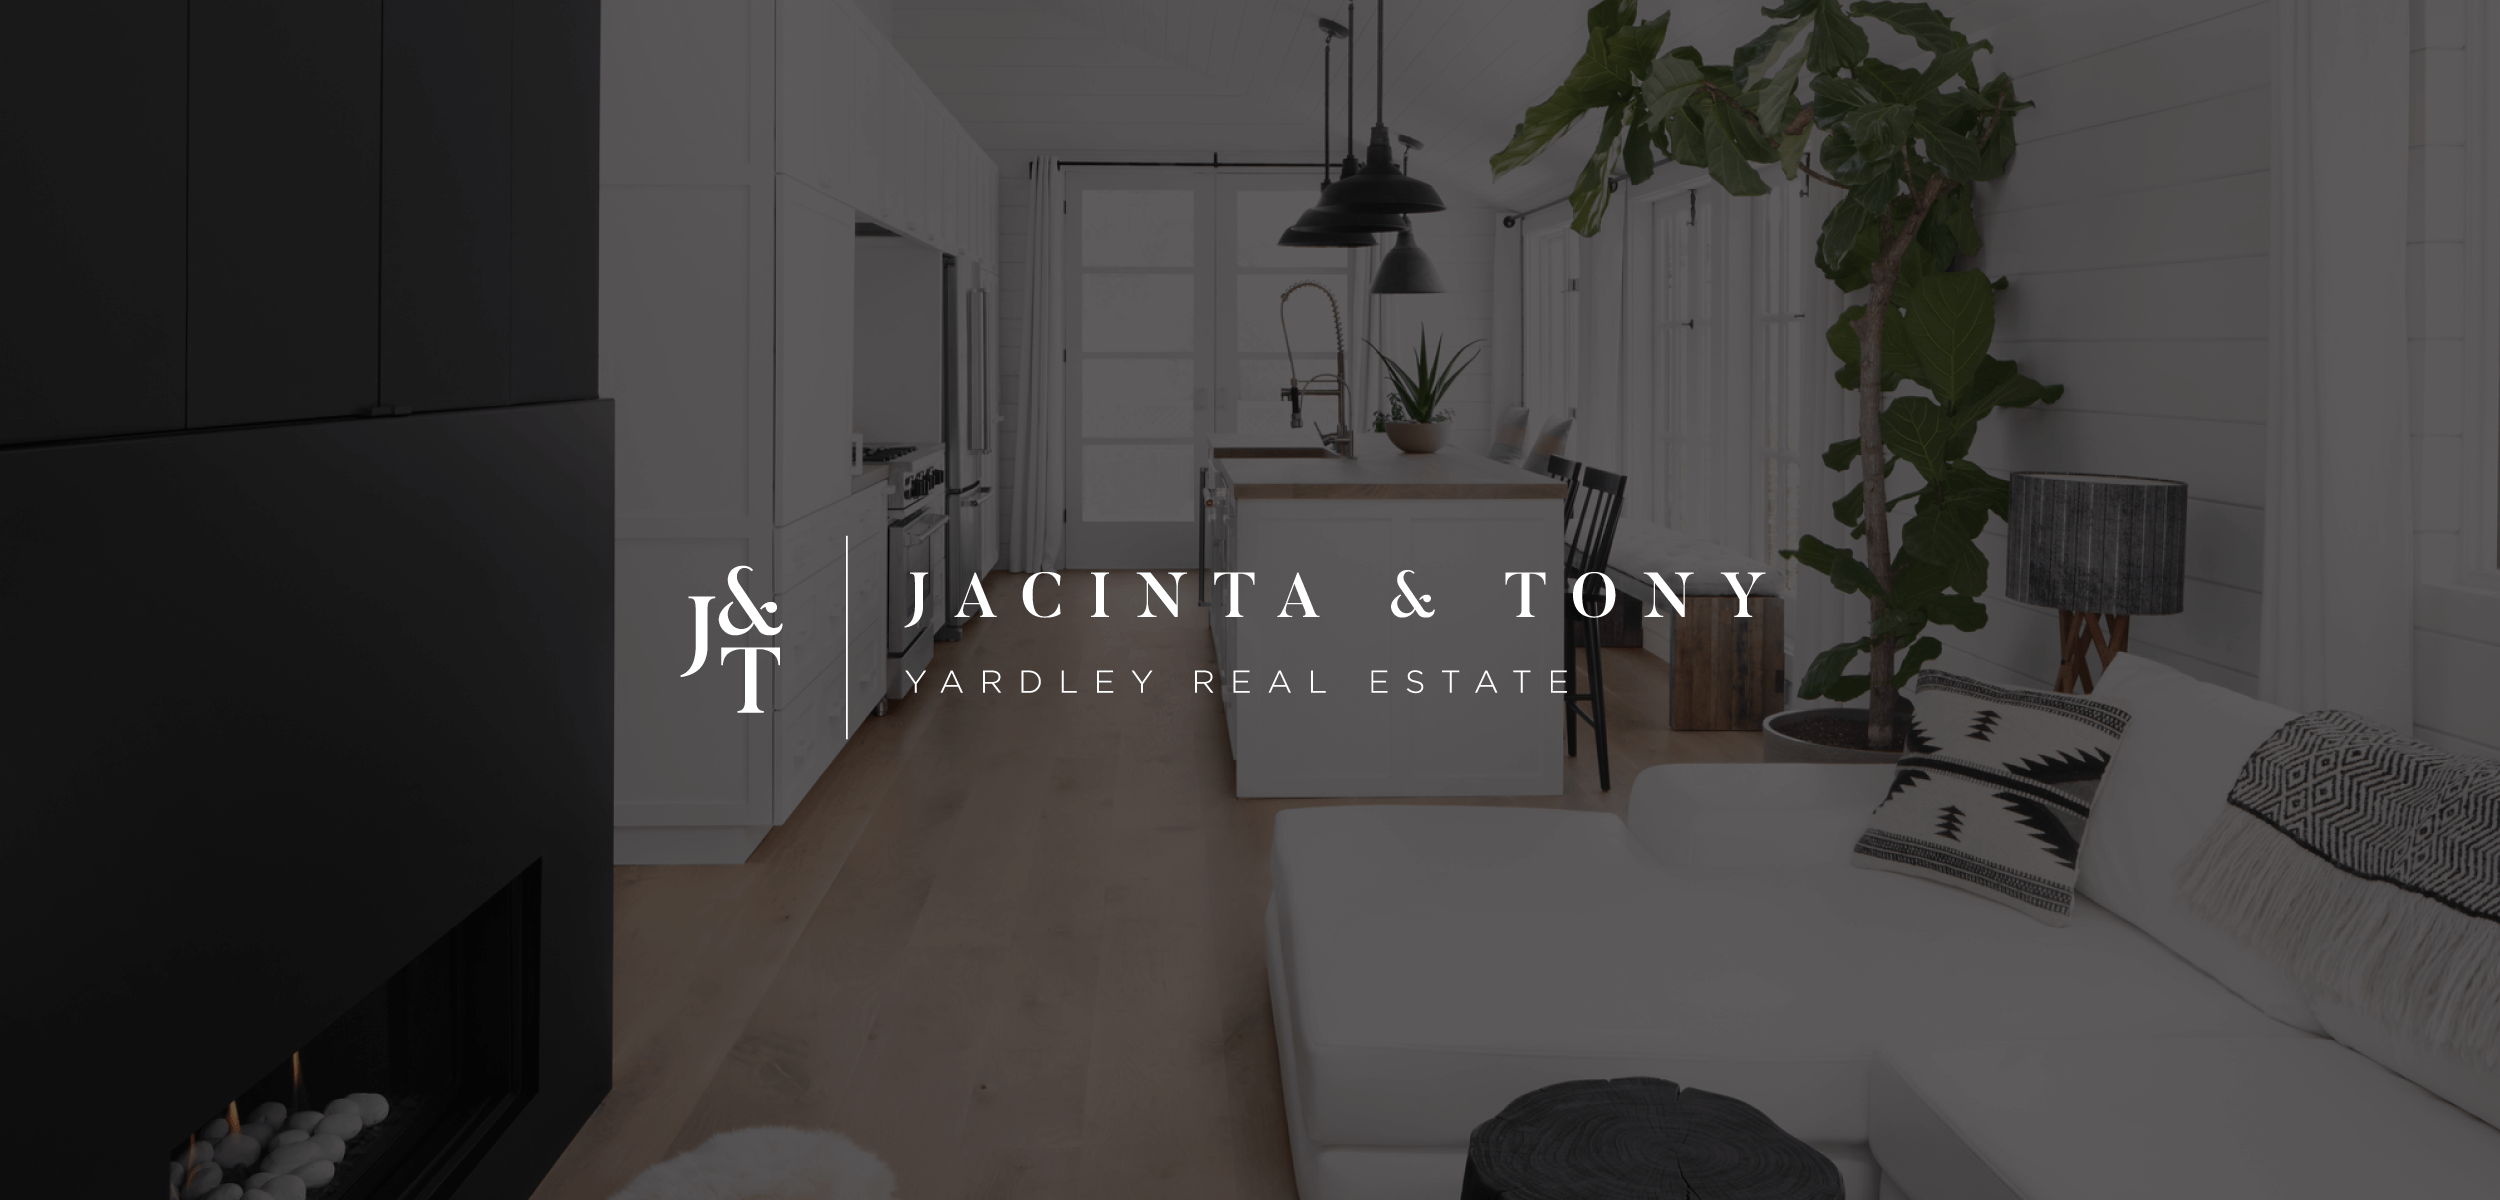 Jacinta and Tony Yardley Real Estate logo.